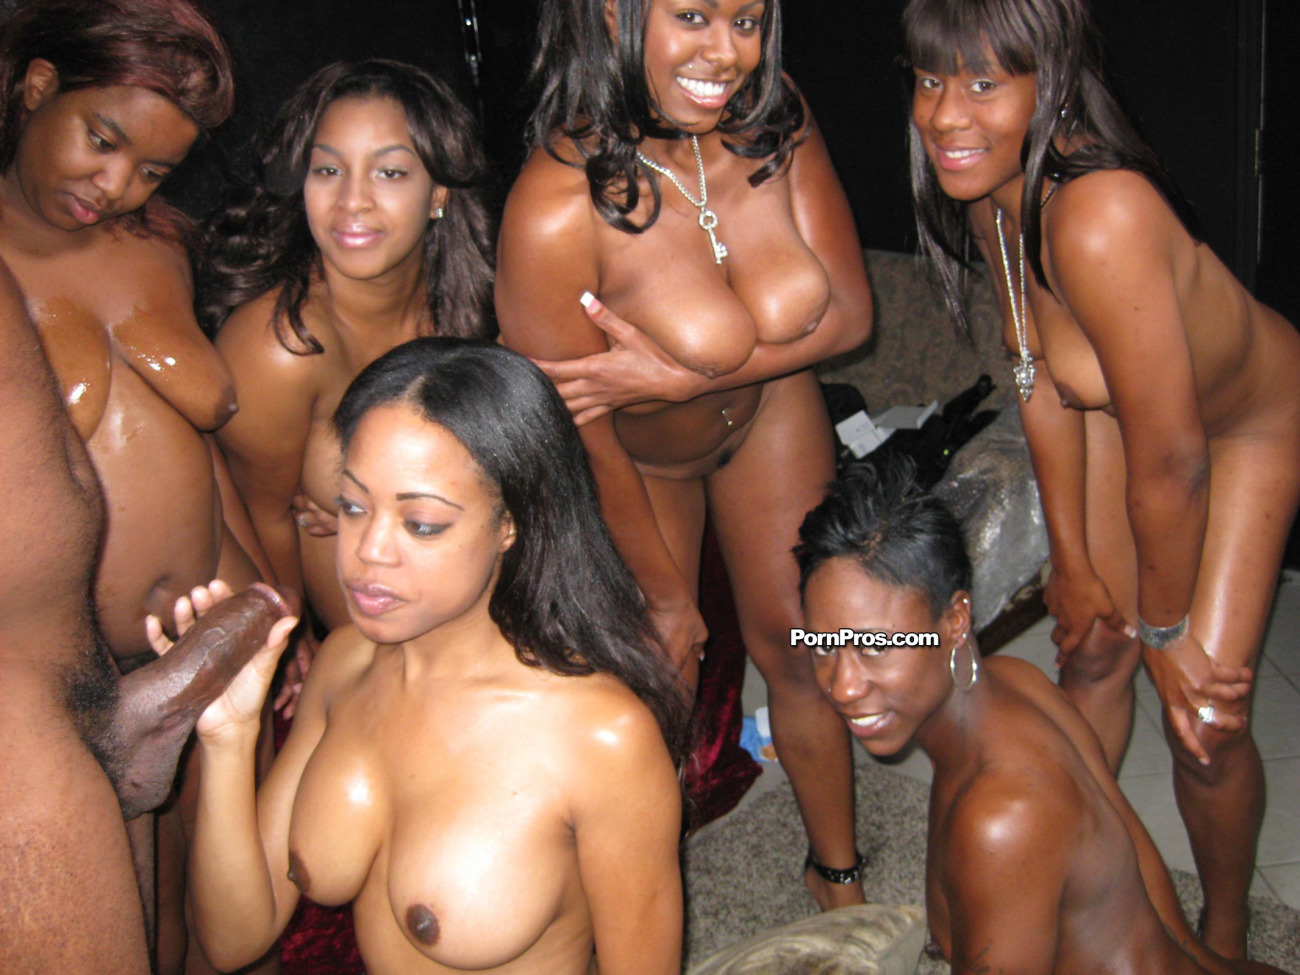 South africa adult pictures mzansi porn celebrity naked